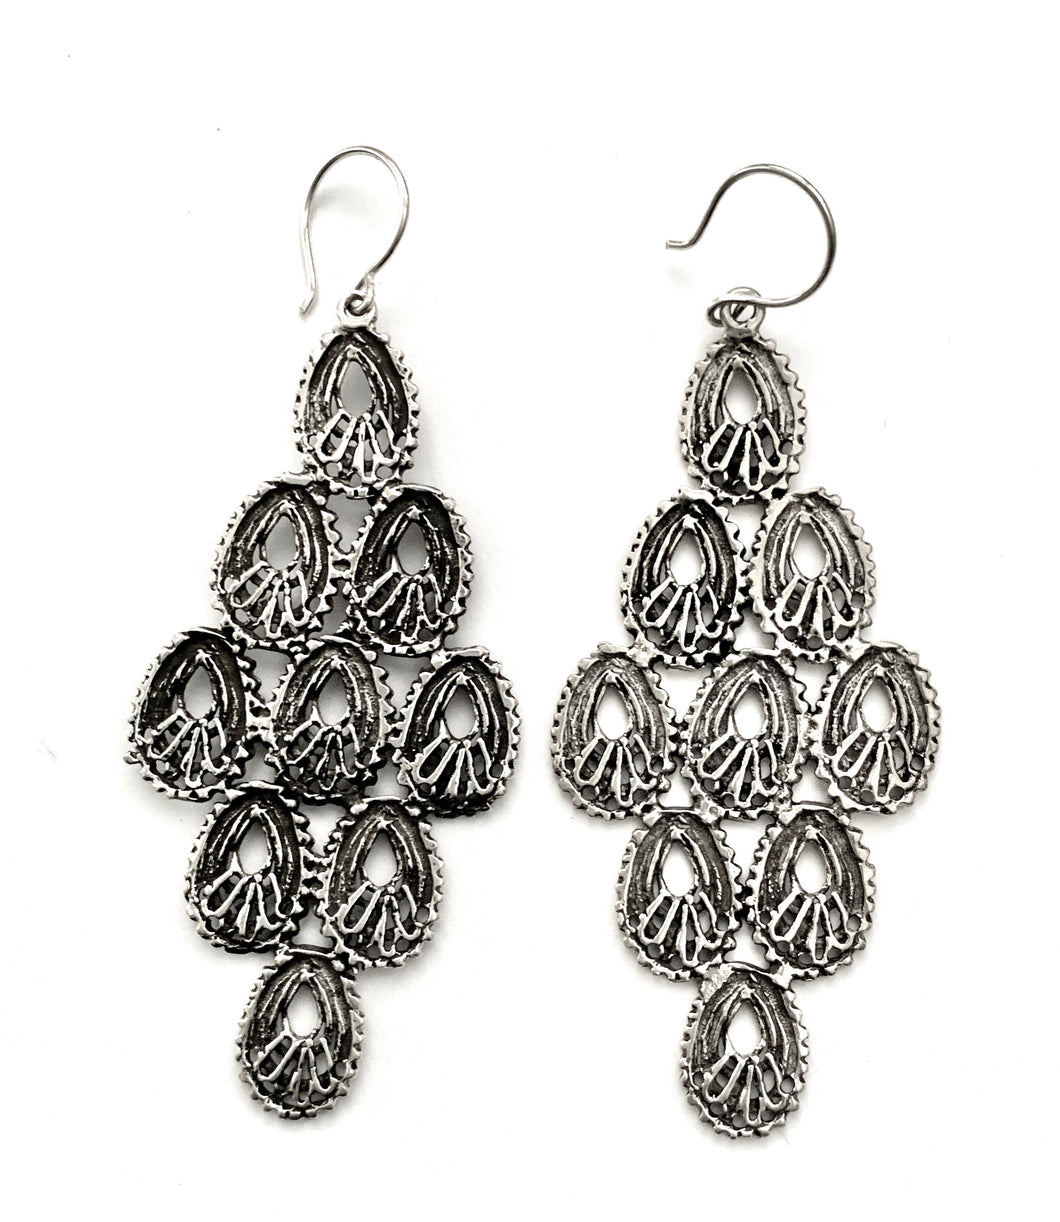 Silver Drop Earrings - WA369